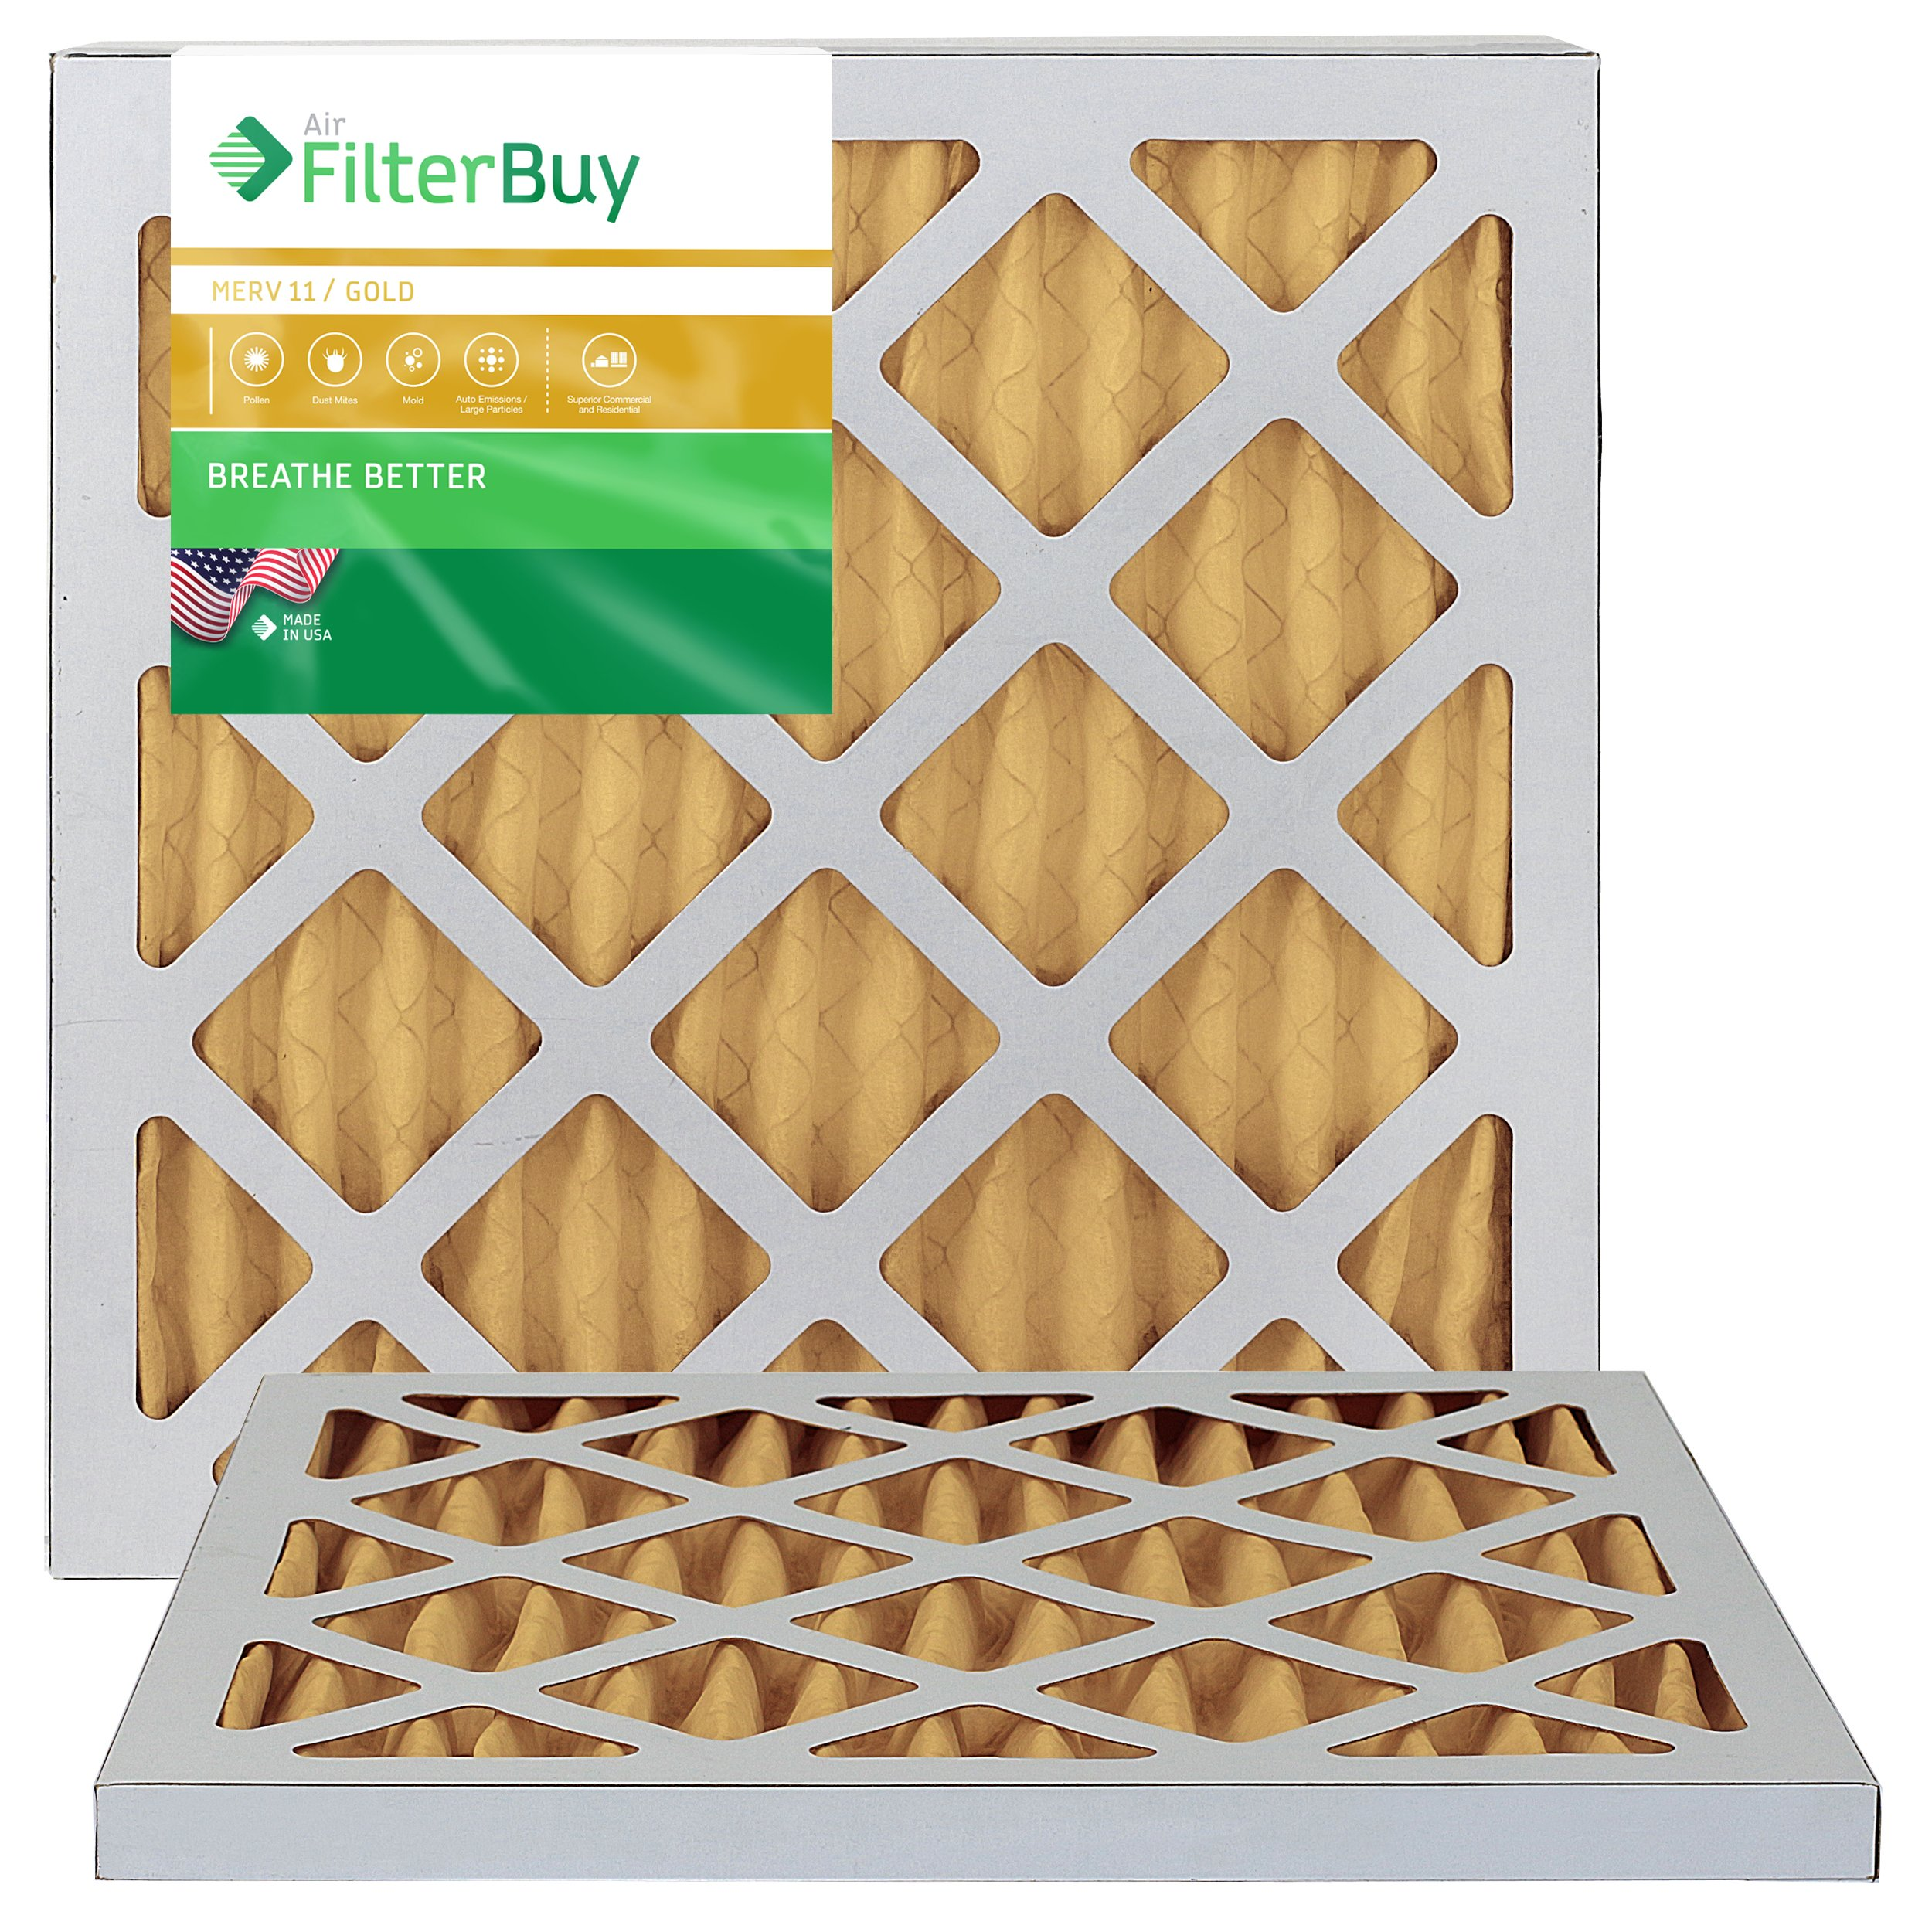 FilterBuy 12x12x1 MERV 11 Pleated AC Furnace Air Filter, (Pack of 2 Filters), 12x12x1 – Gold